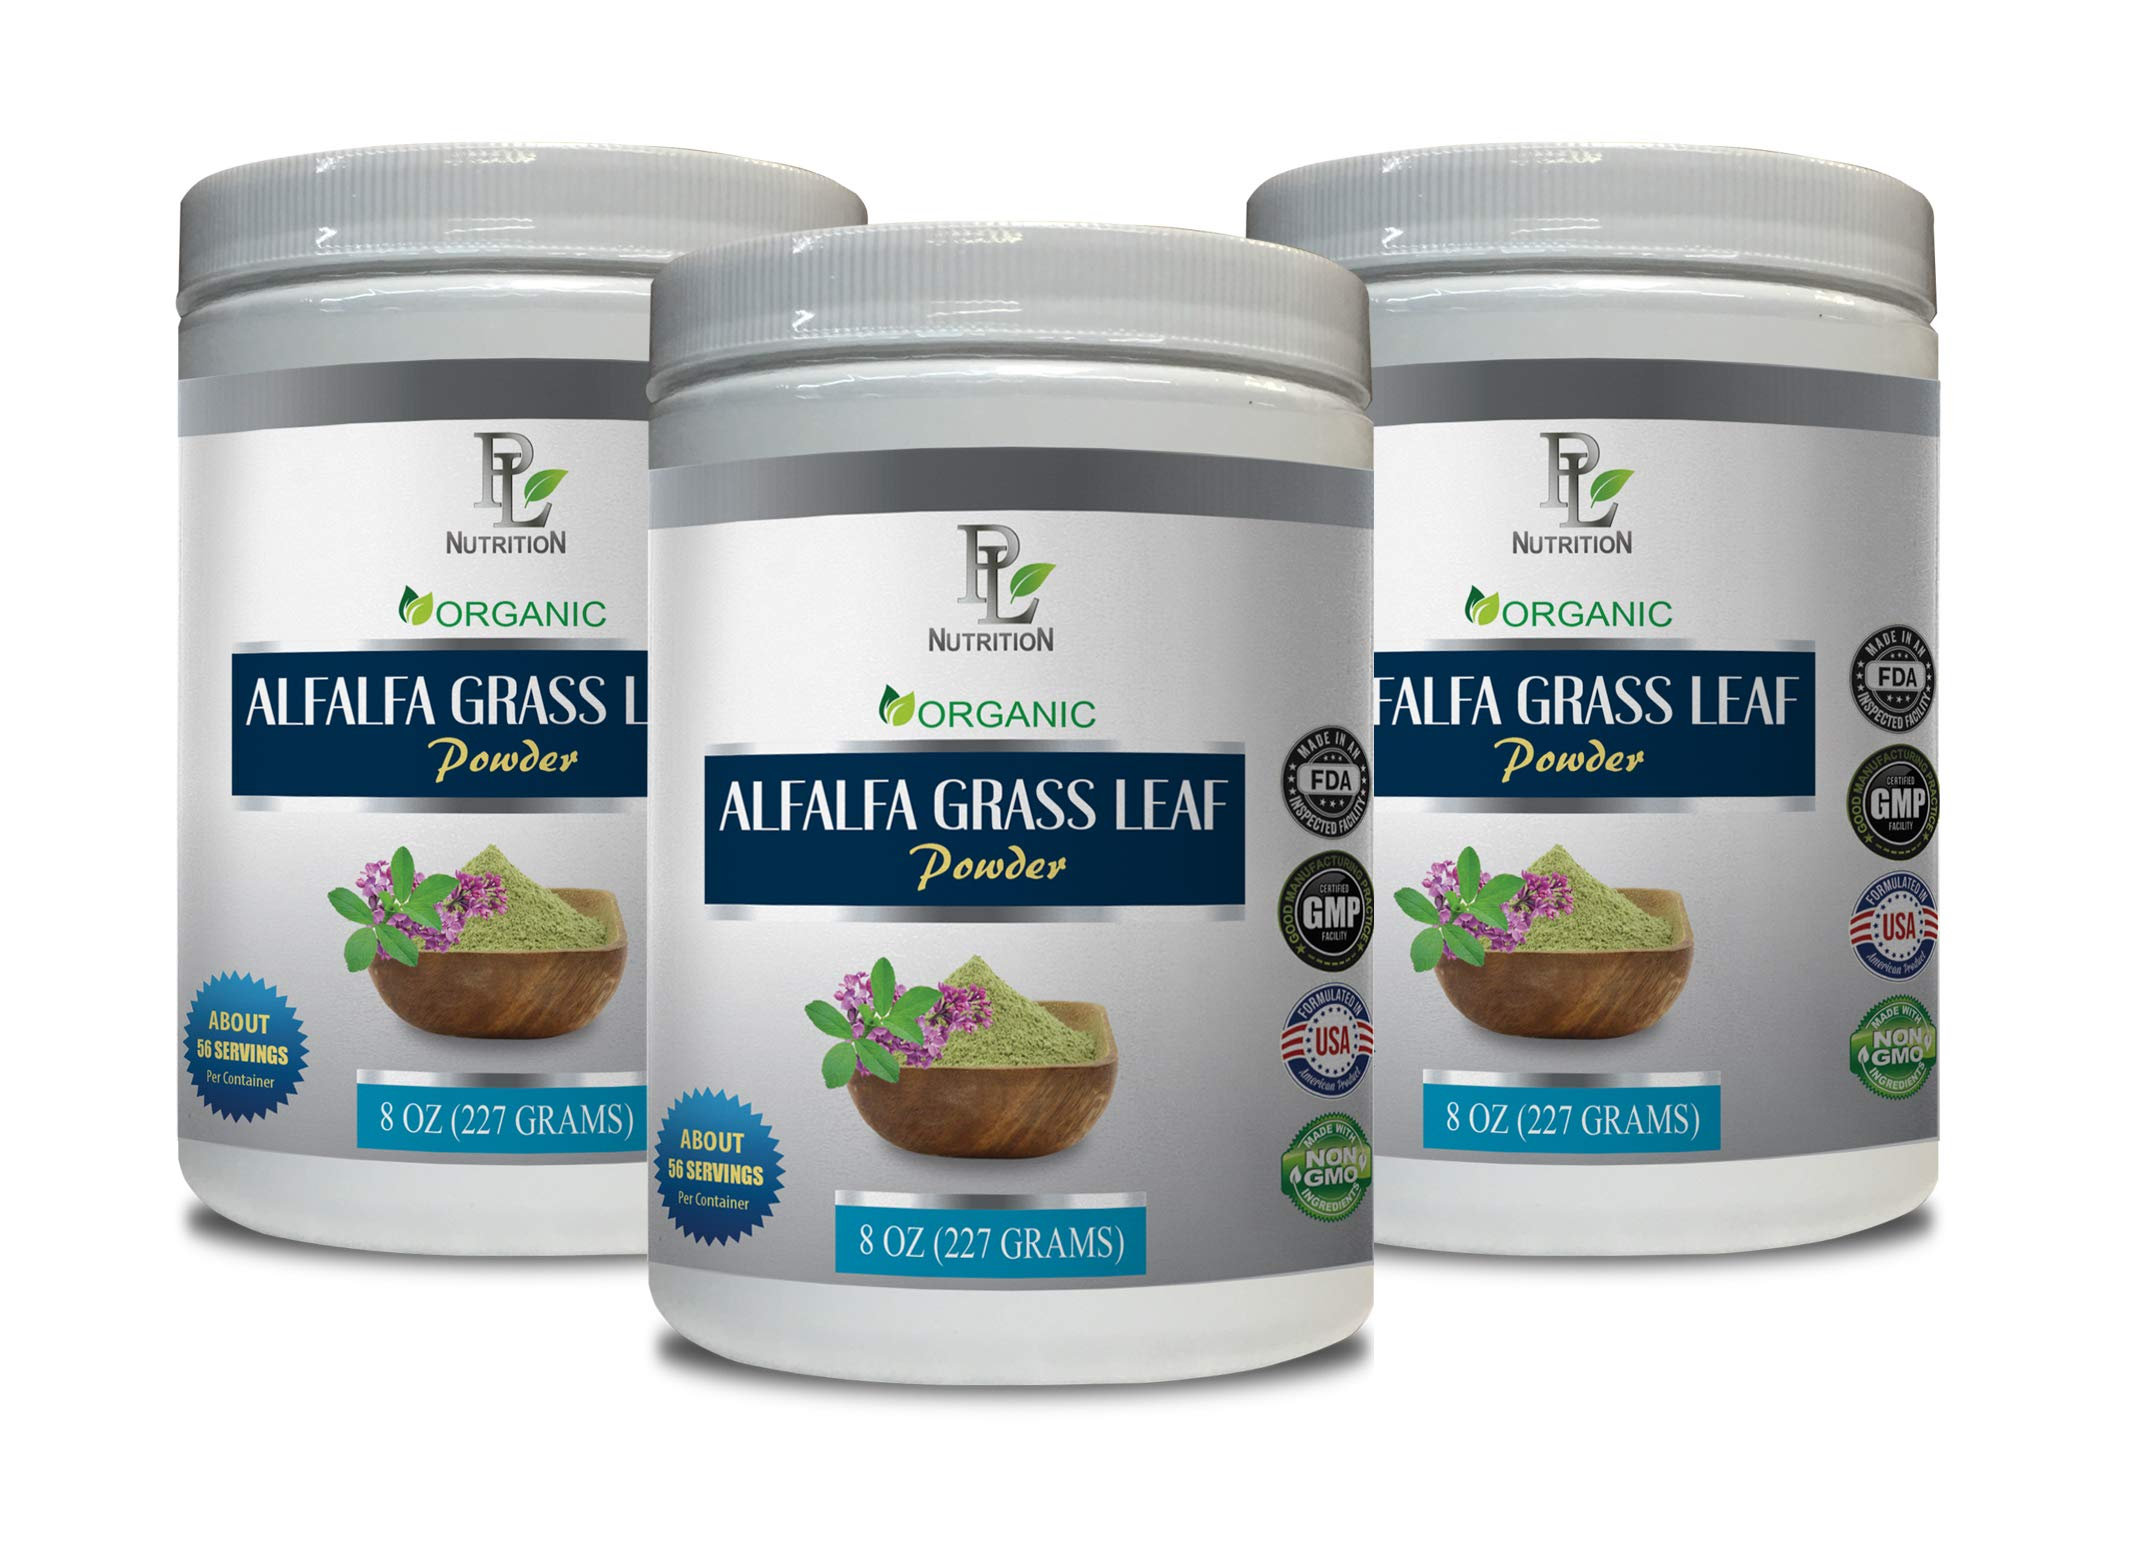 Organic antioxidant Powder - Alfalfa Grass Leaf Organic Powder - Digestion Advanced Formula - 3 Cans 24 OZ (168 Servings)